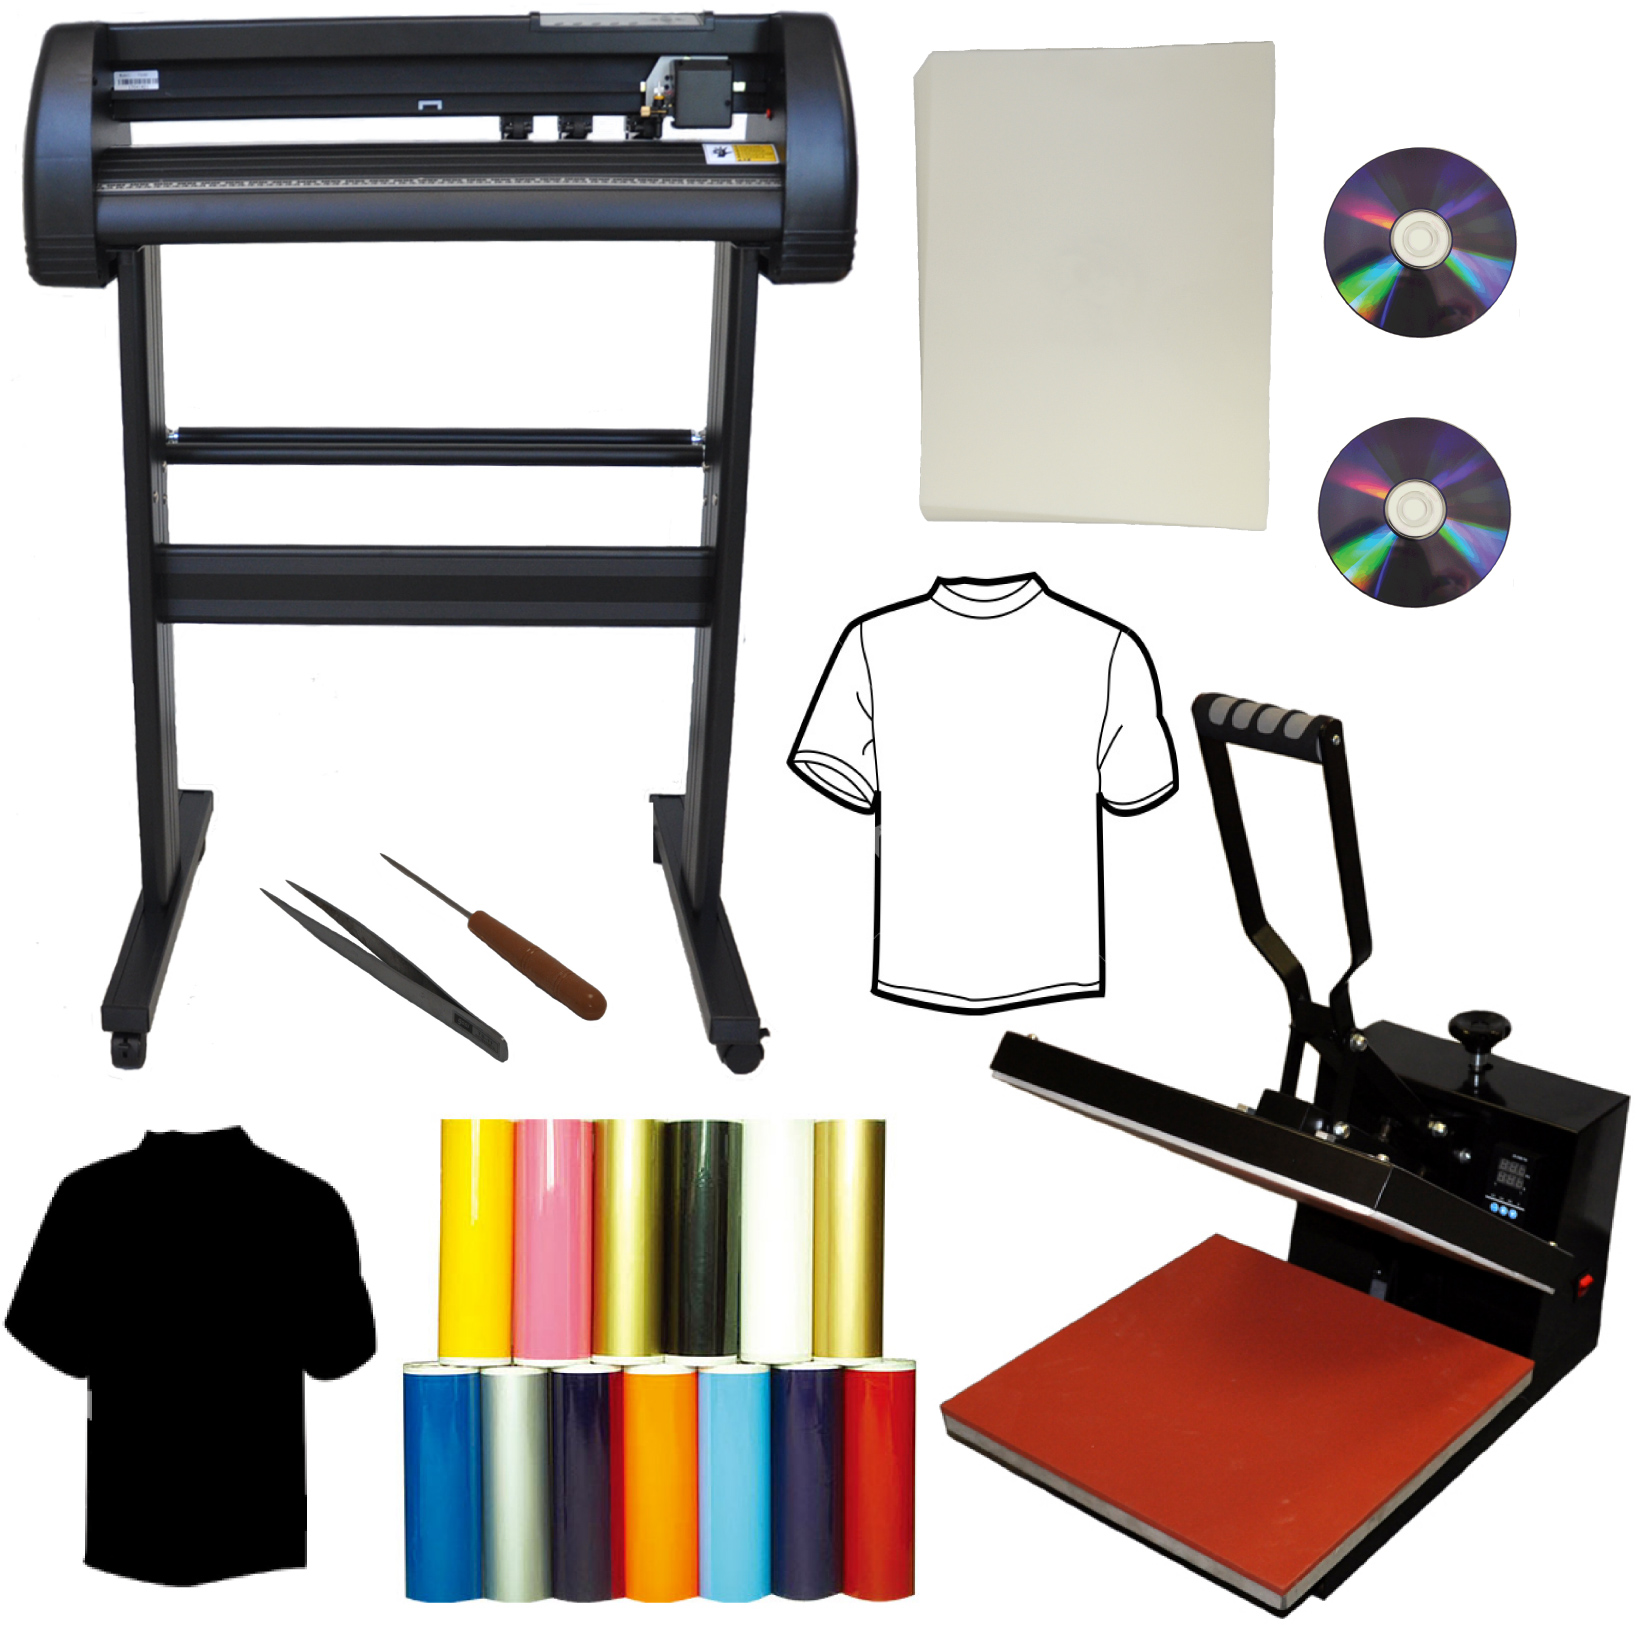 "28"" 500g Metal Laser Point Vinyl Cutter Plotter,15x15 Heat Press"